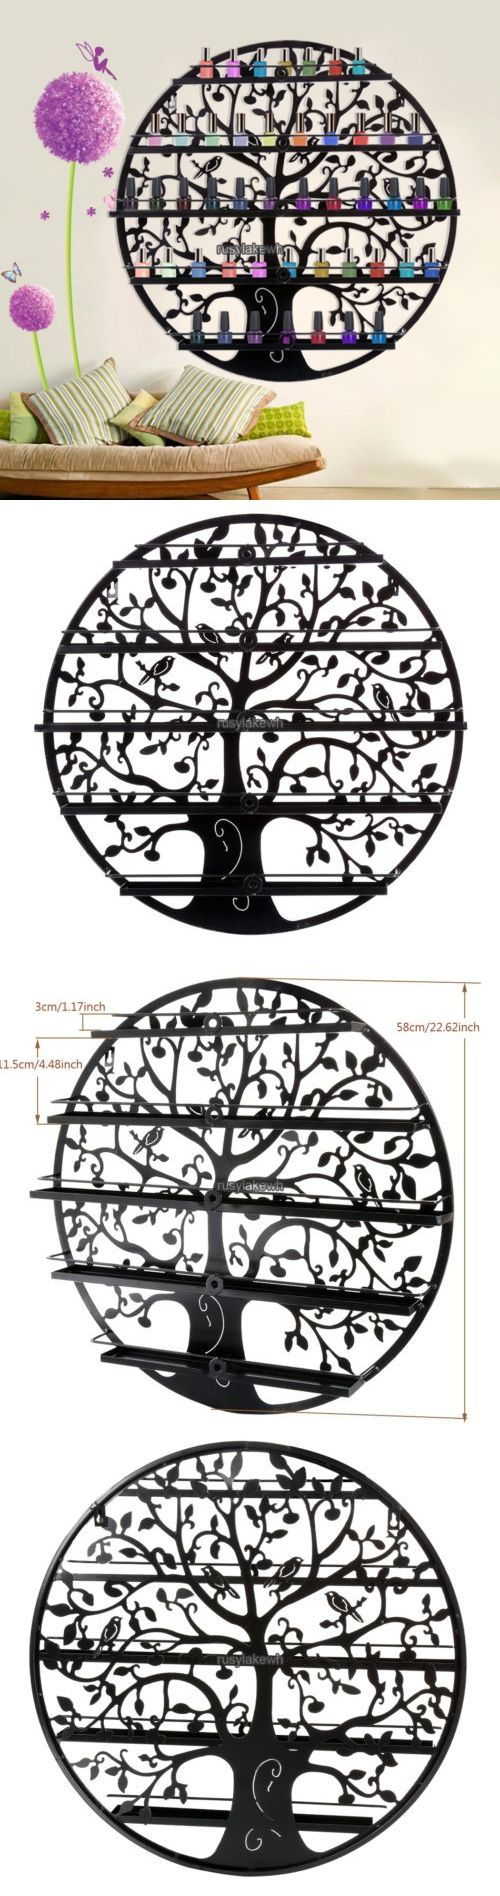 Nail Practice and Display: New Tree Silhouette Nail Polish Organizer Cosmetic Metal Wall Mount Rack Shelf BUY IT NOW ONLY: $35.19